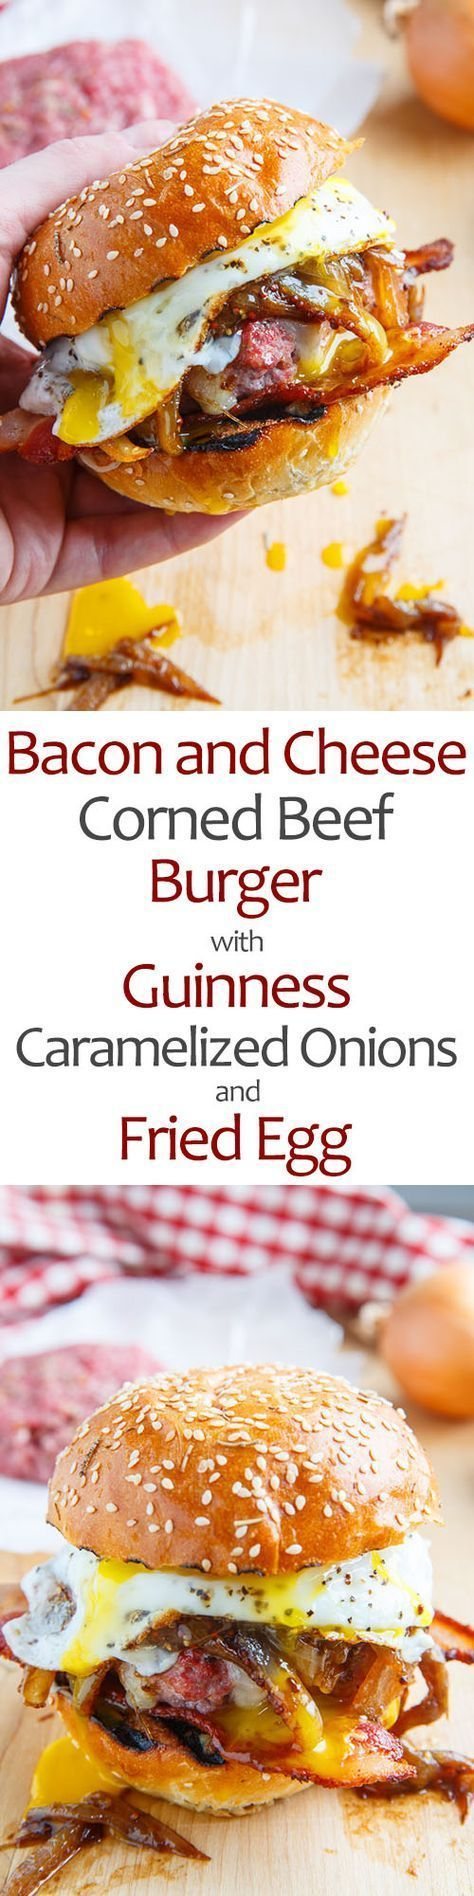 Bacon and Cheese Corned Beef Burger with Guinness Caramelized Onions and a Fried…